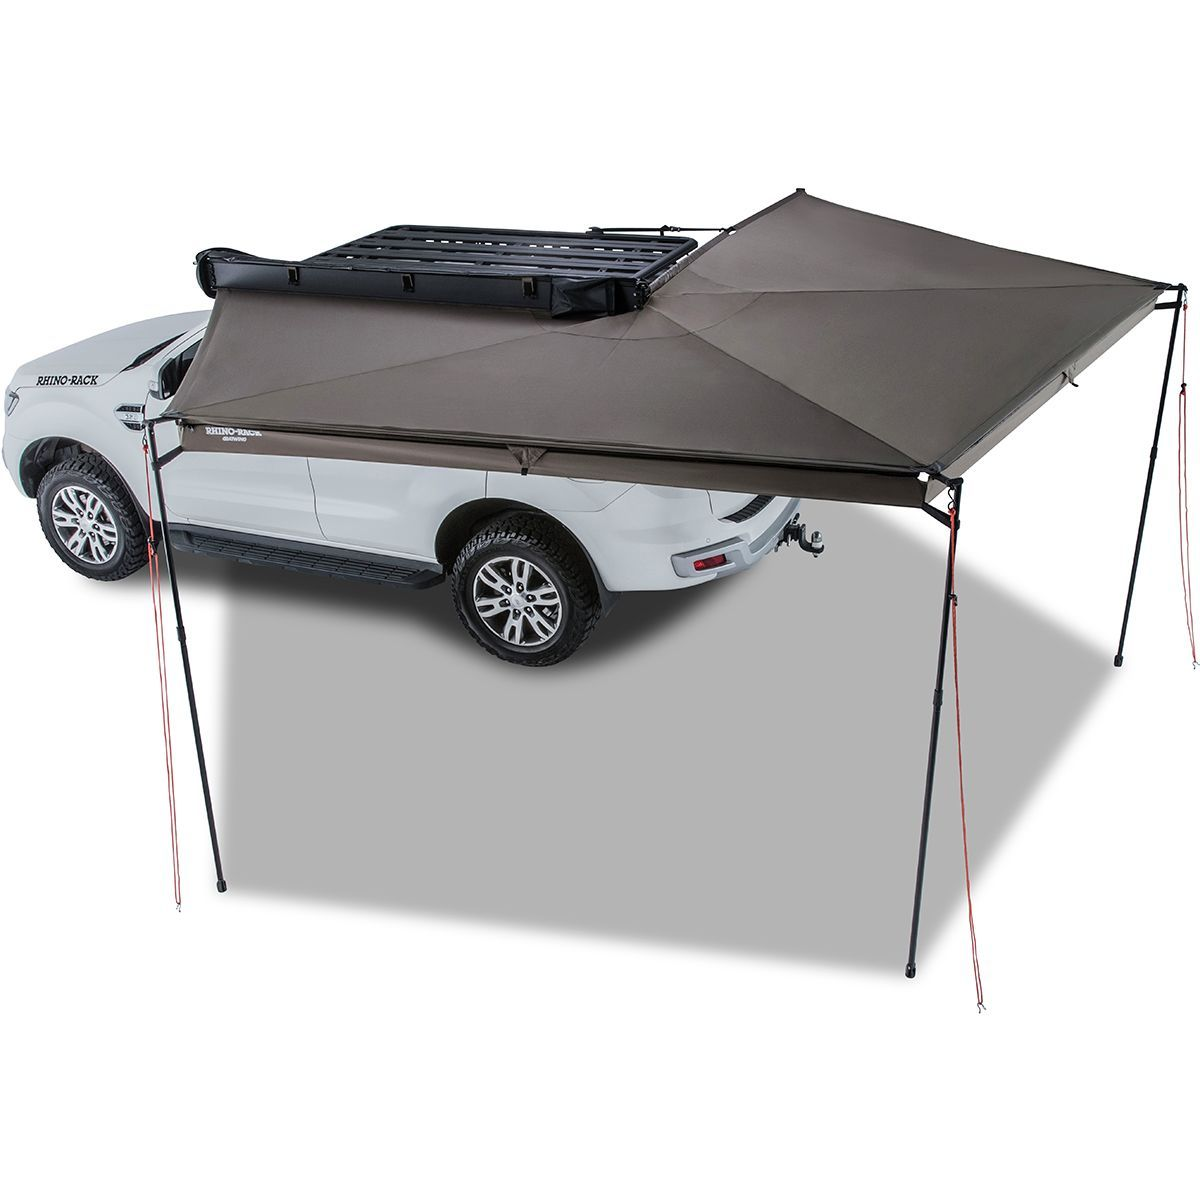 Batwing Awning In 2020 Truck Roof Rack Car Awnings Roof Rack